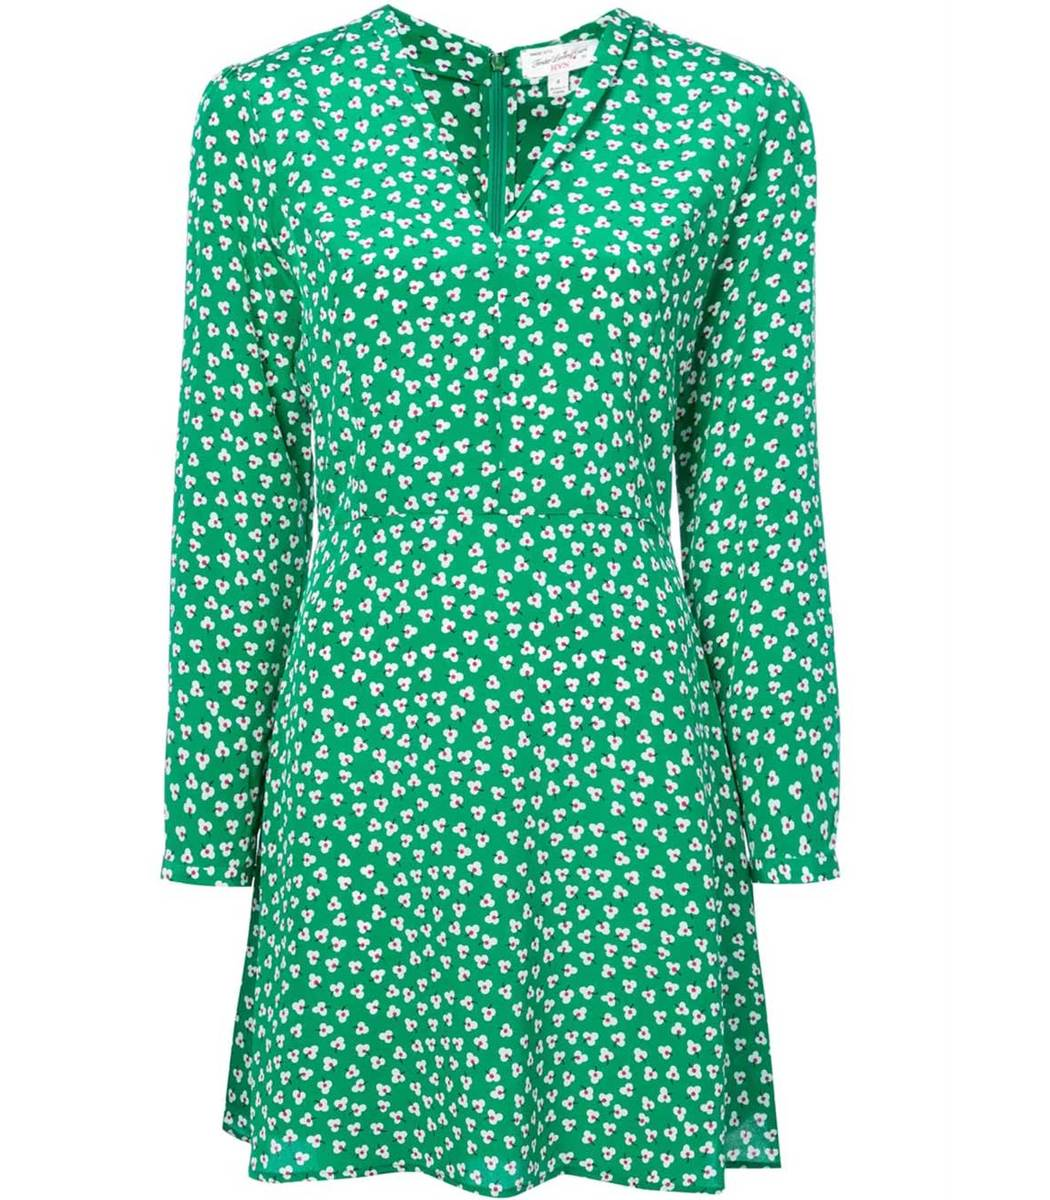 HARLEY VIERA-NEWTON Green And White Long Sleeve Floral Mini Dress